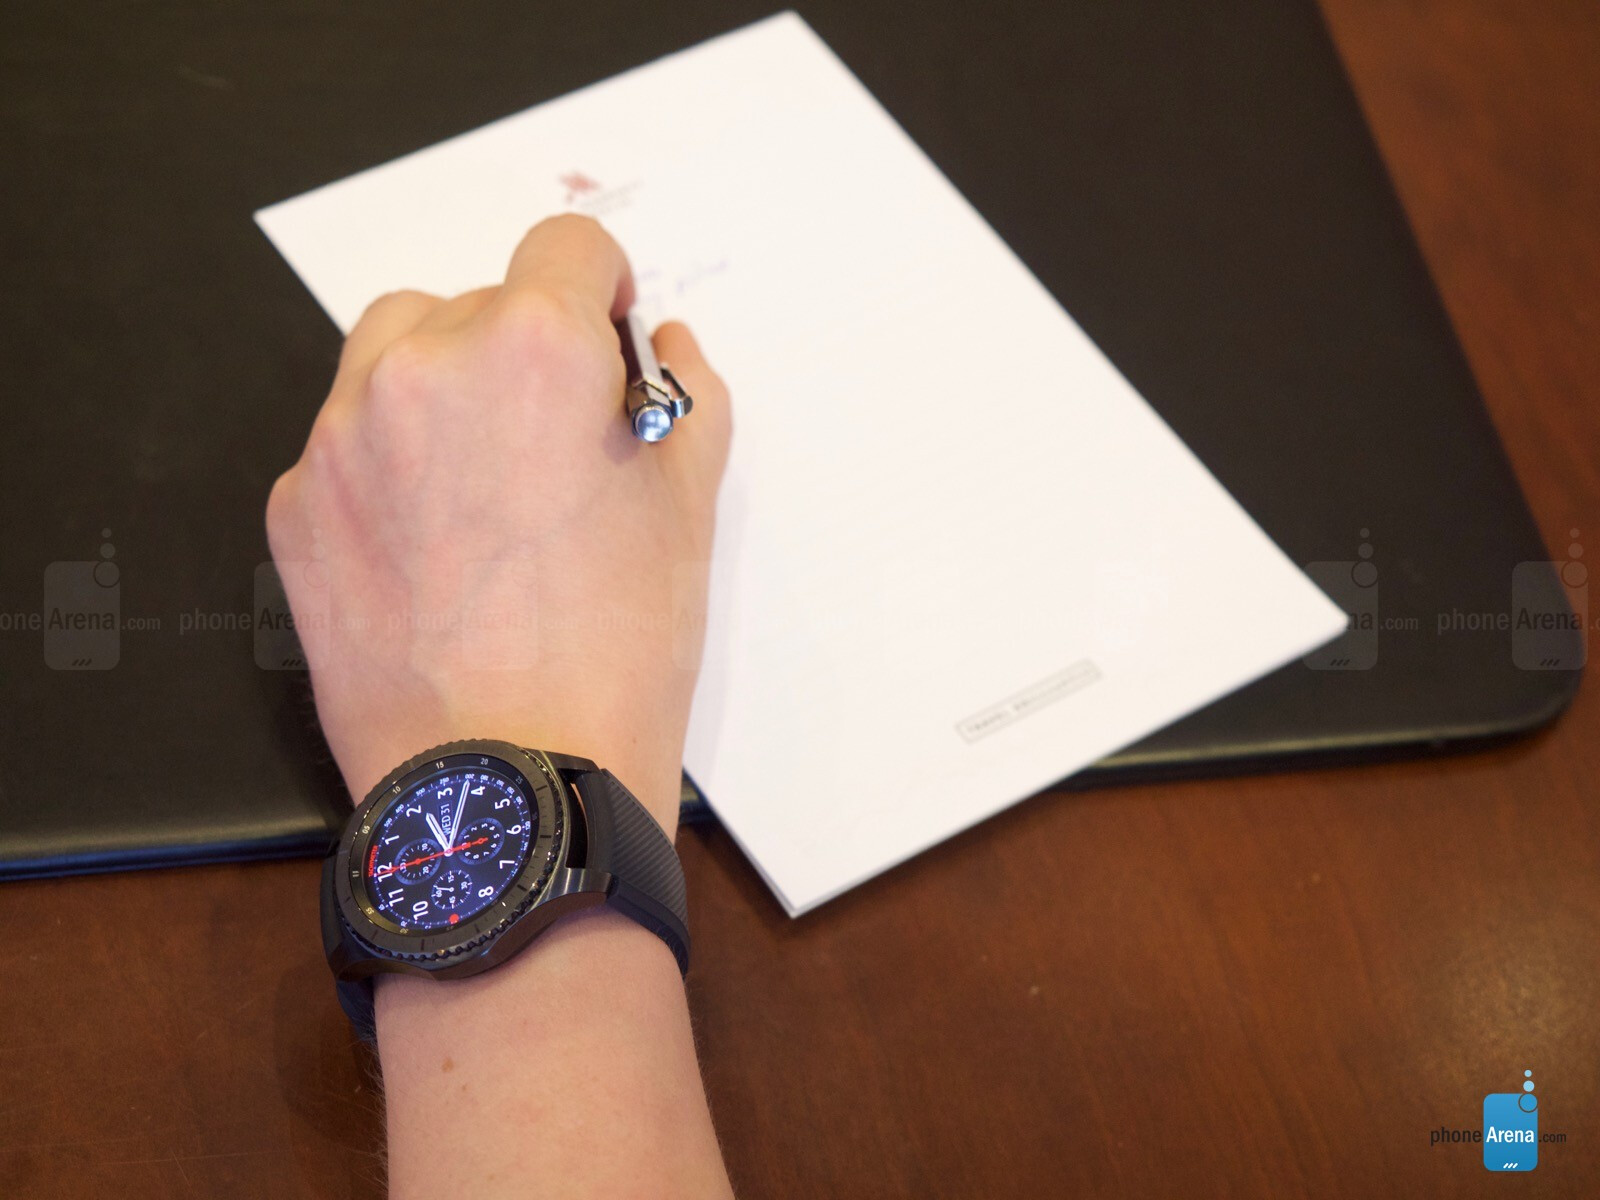 Samsung Gear S3 hands-on: Classic and Frontier versions